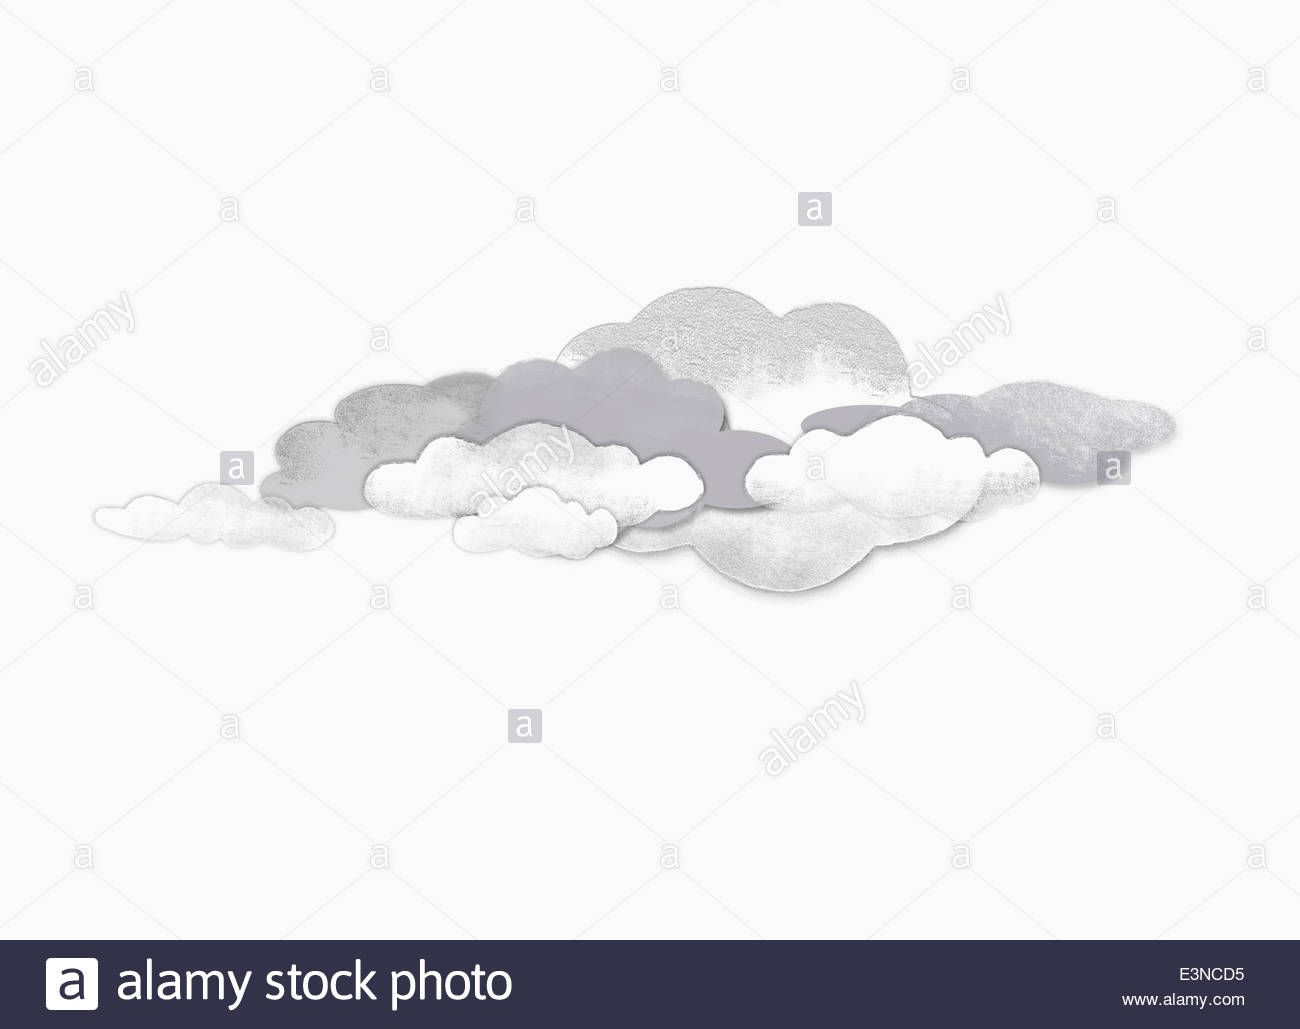 1300x1029 Storm Clouds Against White Background Stock Photo 71156209